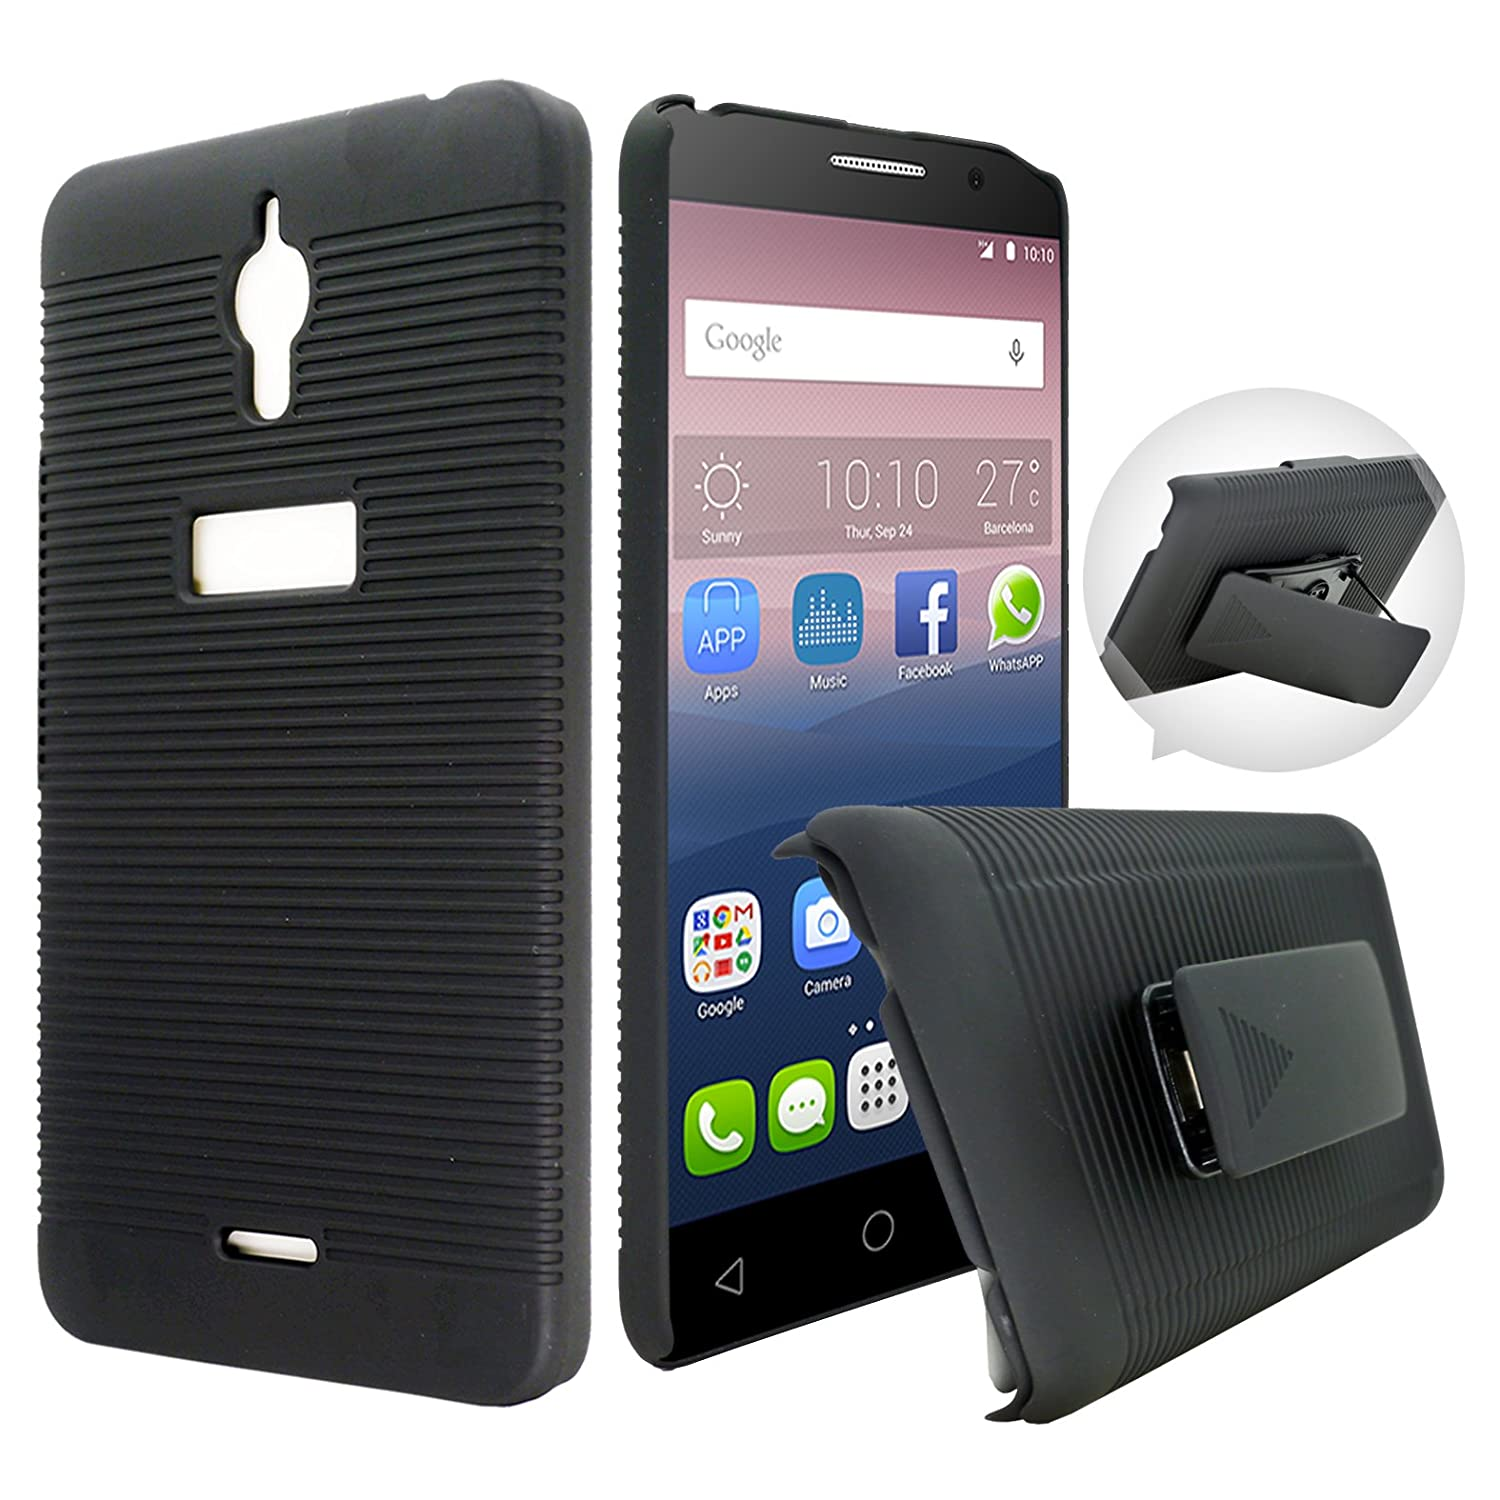 finest selection 0ede7 e6433 Alcatel PIXI 4 6.0 inches(3G) Case, Customerfirst - Heavy Duty Hybrid Armor  Dual Layer Kickstand Belt Clip Holster Combo Rugged Case for Alcatel PIXI  ...